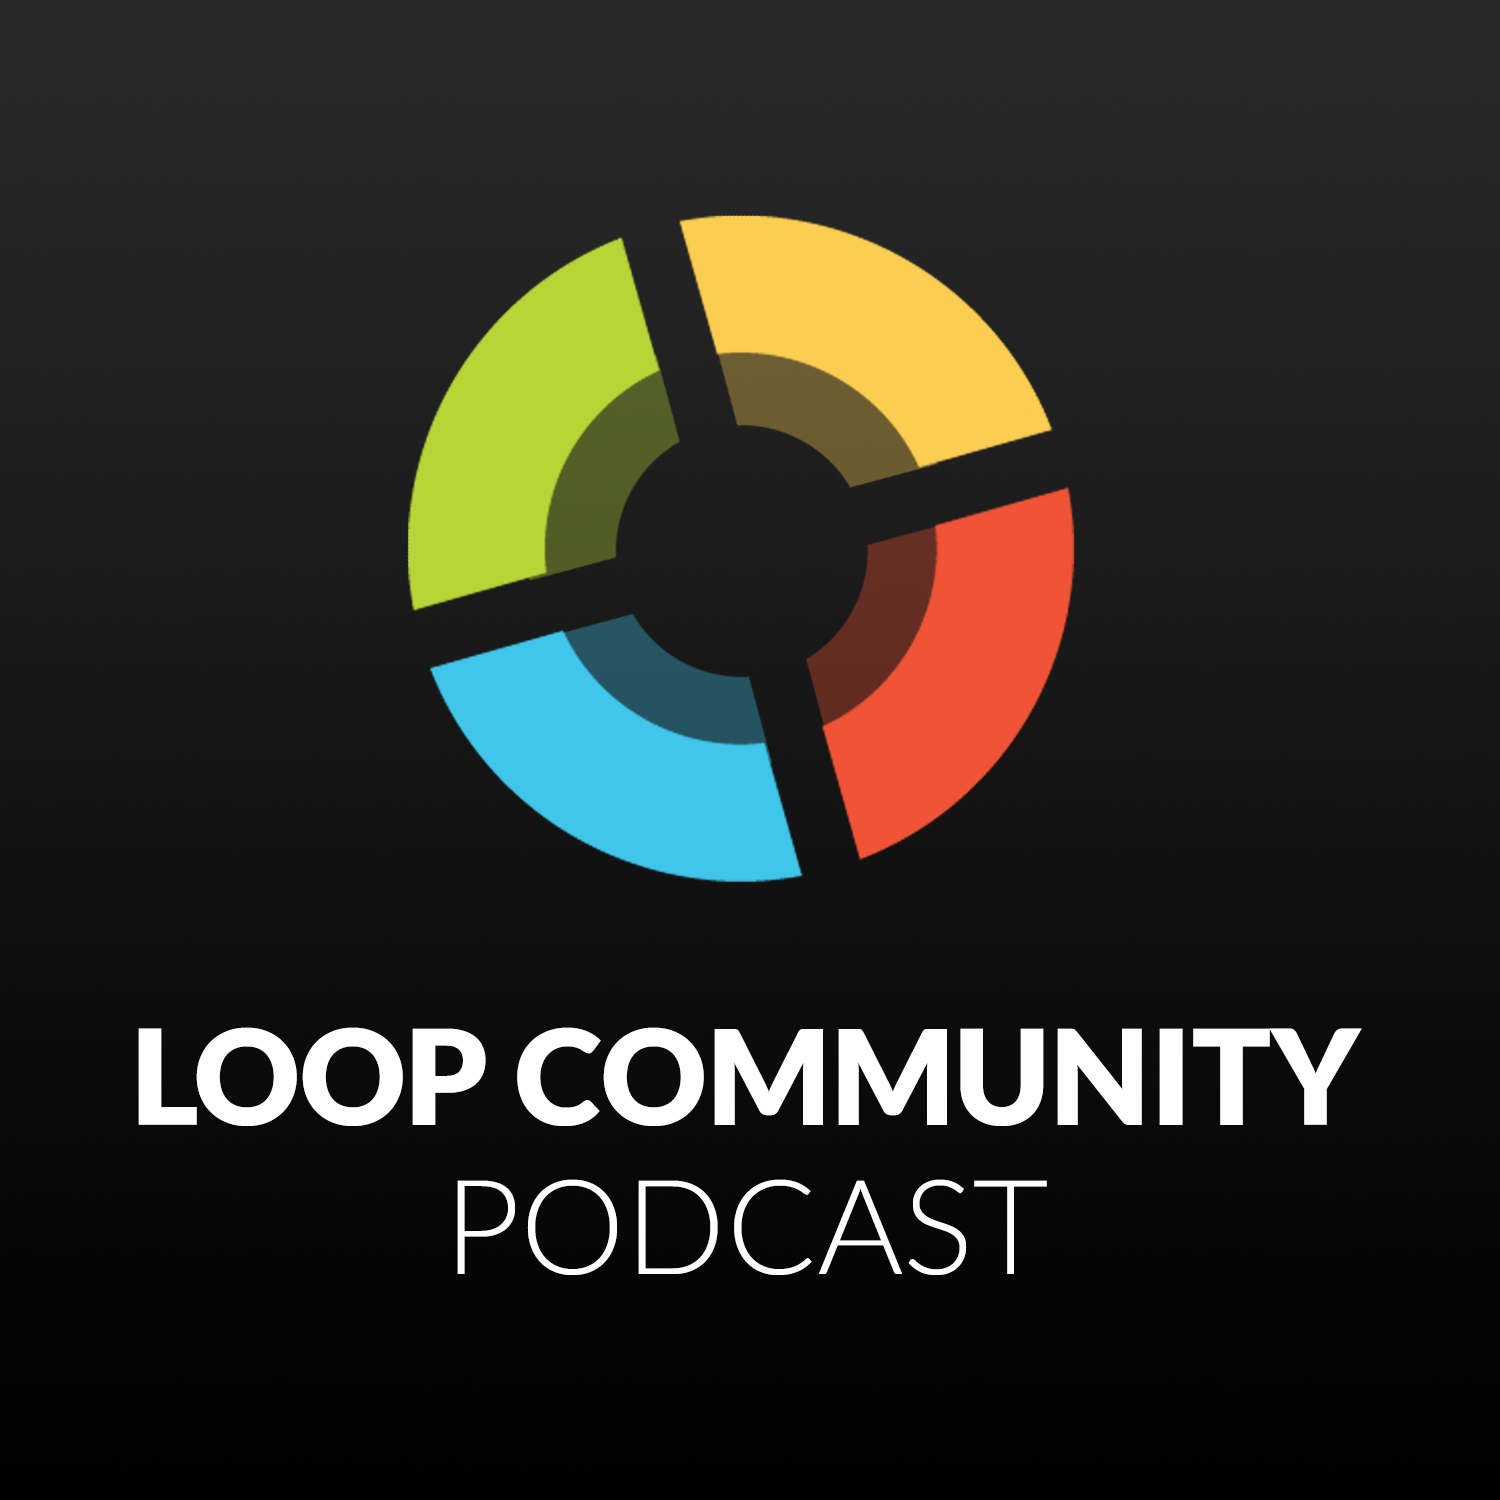 Loop Community Podcast